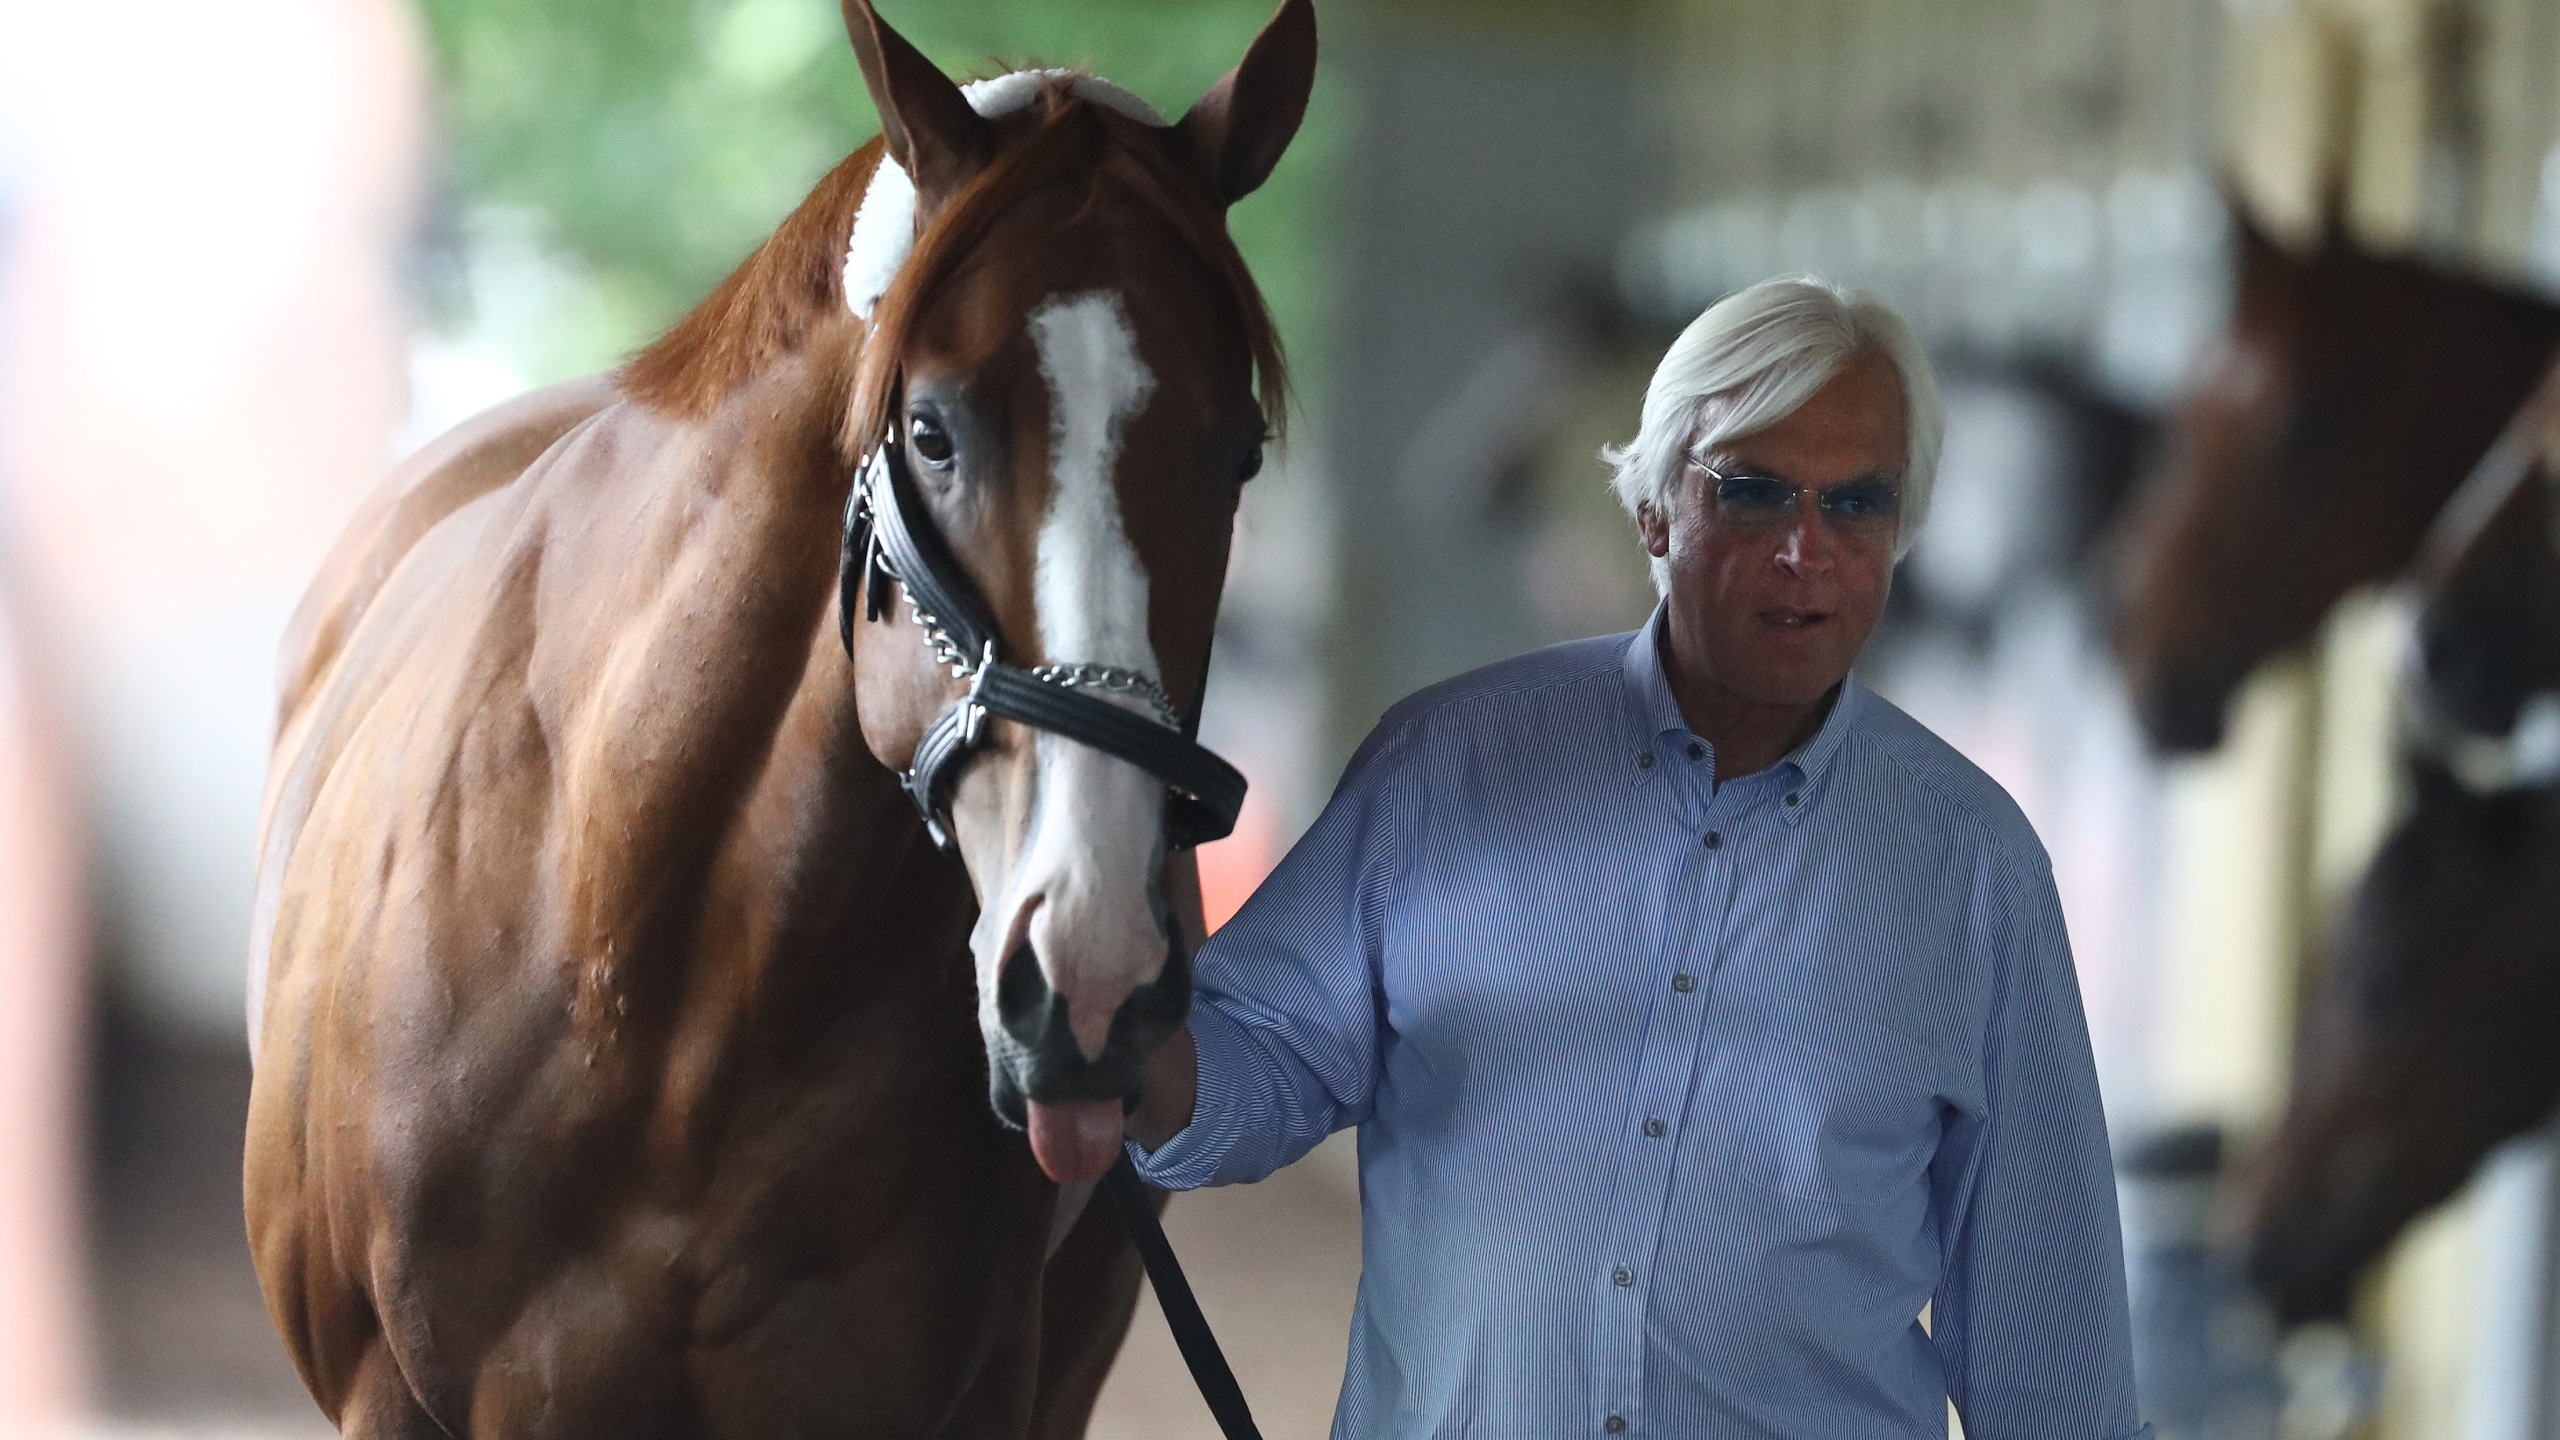 Justify is walked in his barn by trainer Bob Baffert after arriving prior to the 150th running of the Belmont Stakes at Belmont Park on June 6, 2018 in Elmont, New York. (Credit: Al Bello/Getty Images)